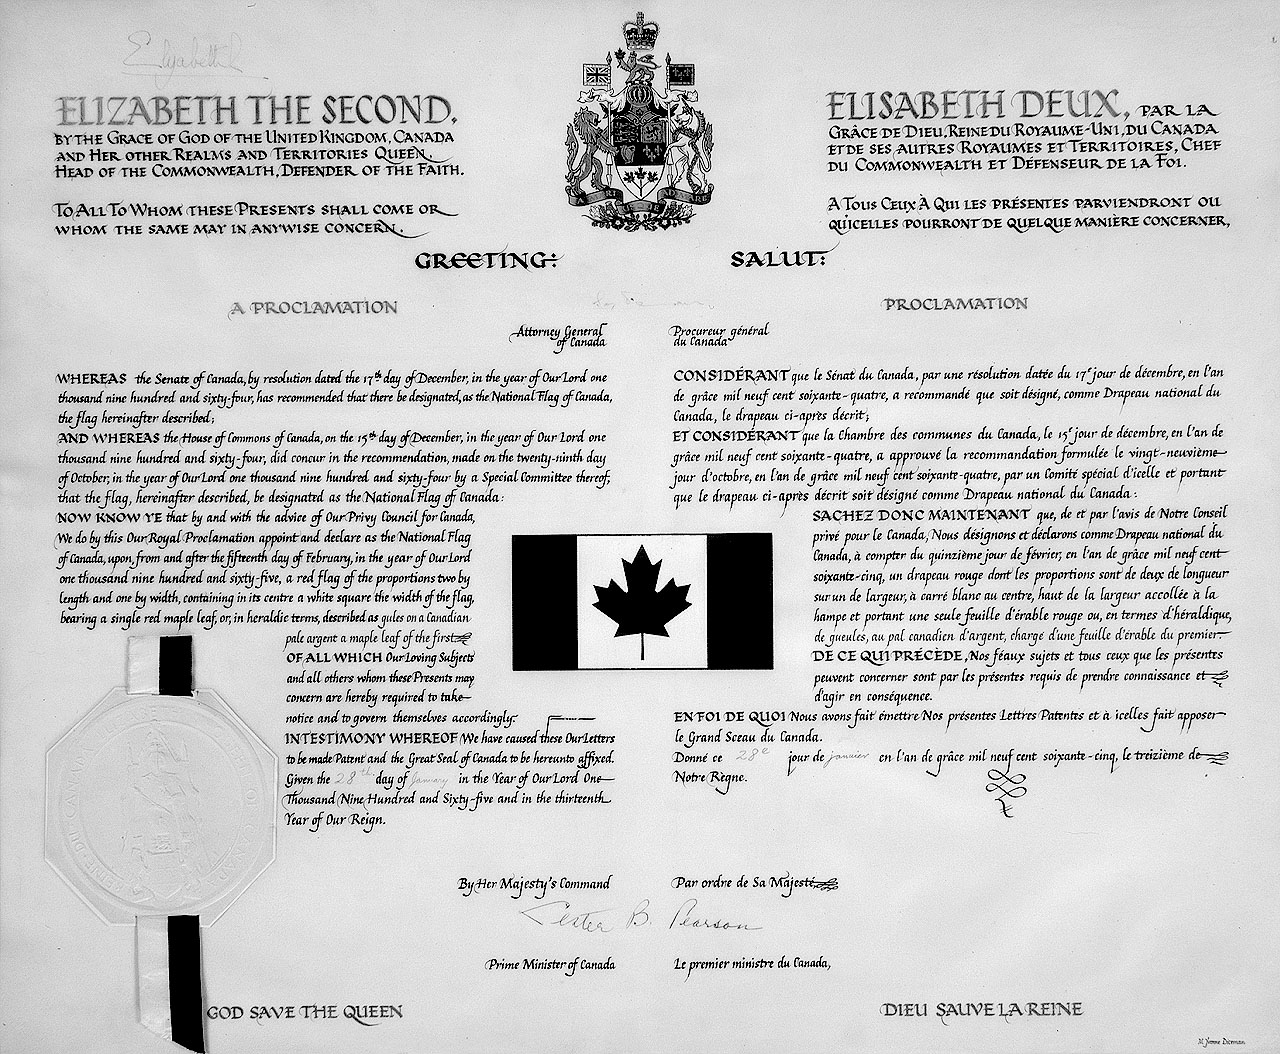 The stanley flag the canadian encyclopedia royal proclamationa digital image of the royal proclamation document that declares the red maple leaf flag as the national flag of canada biocorpaavc